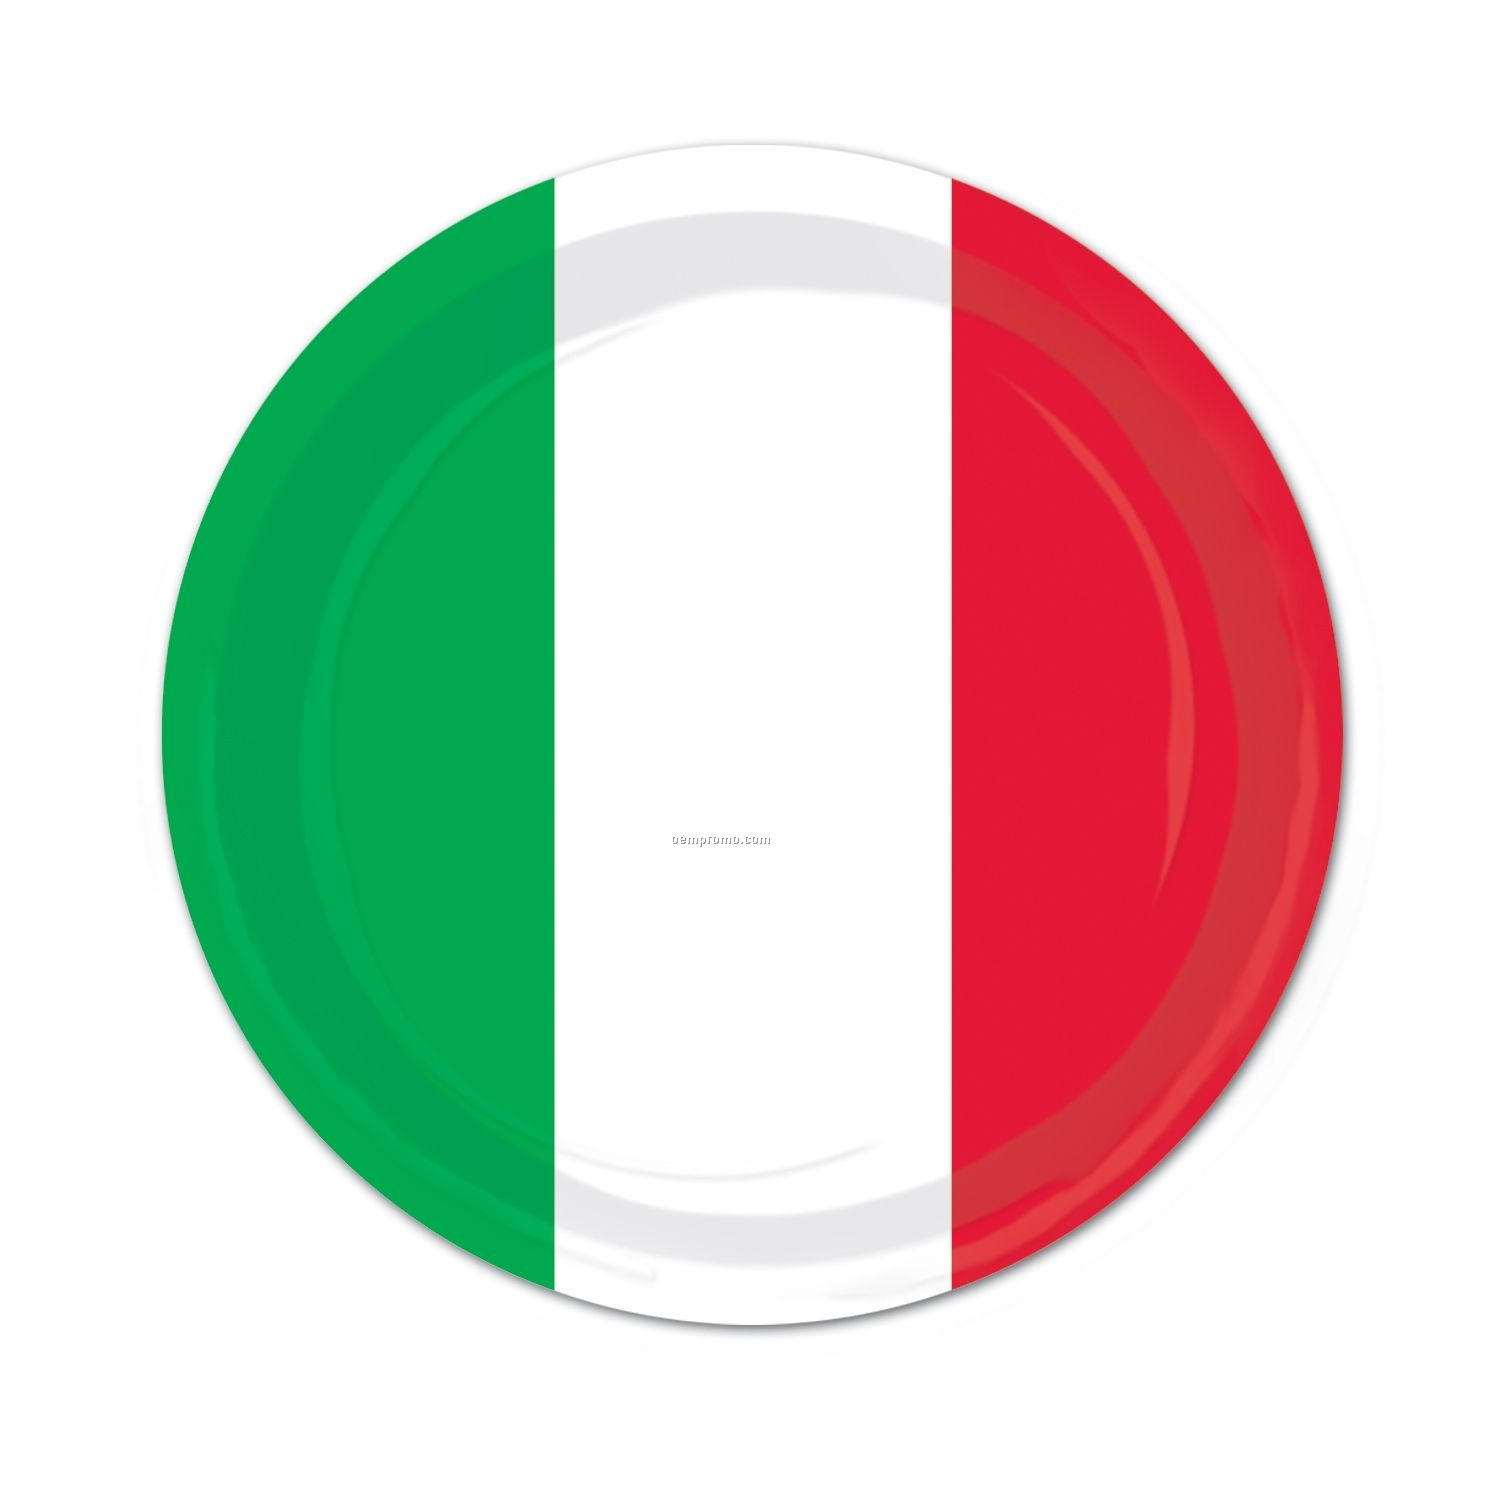 Red/White/Green Plates